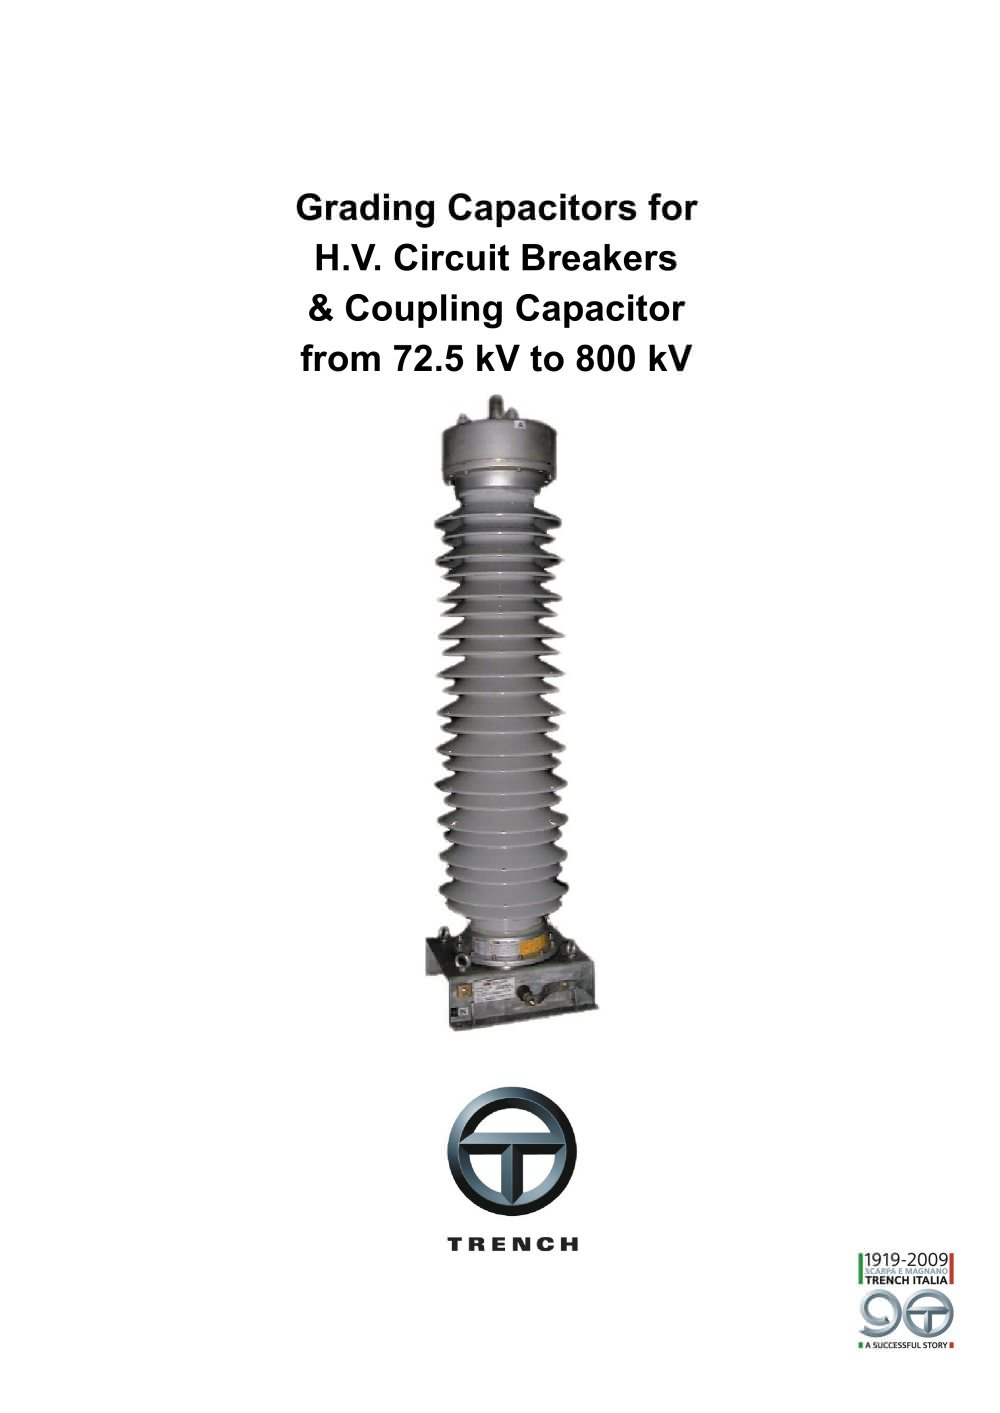 Grading Capacitors Trench Group Pdf Catalogue Technical How To Place A Coupling Capacitor In Circuit 1 4 Pages